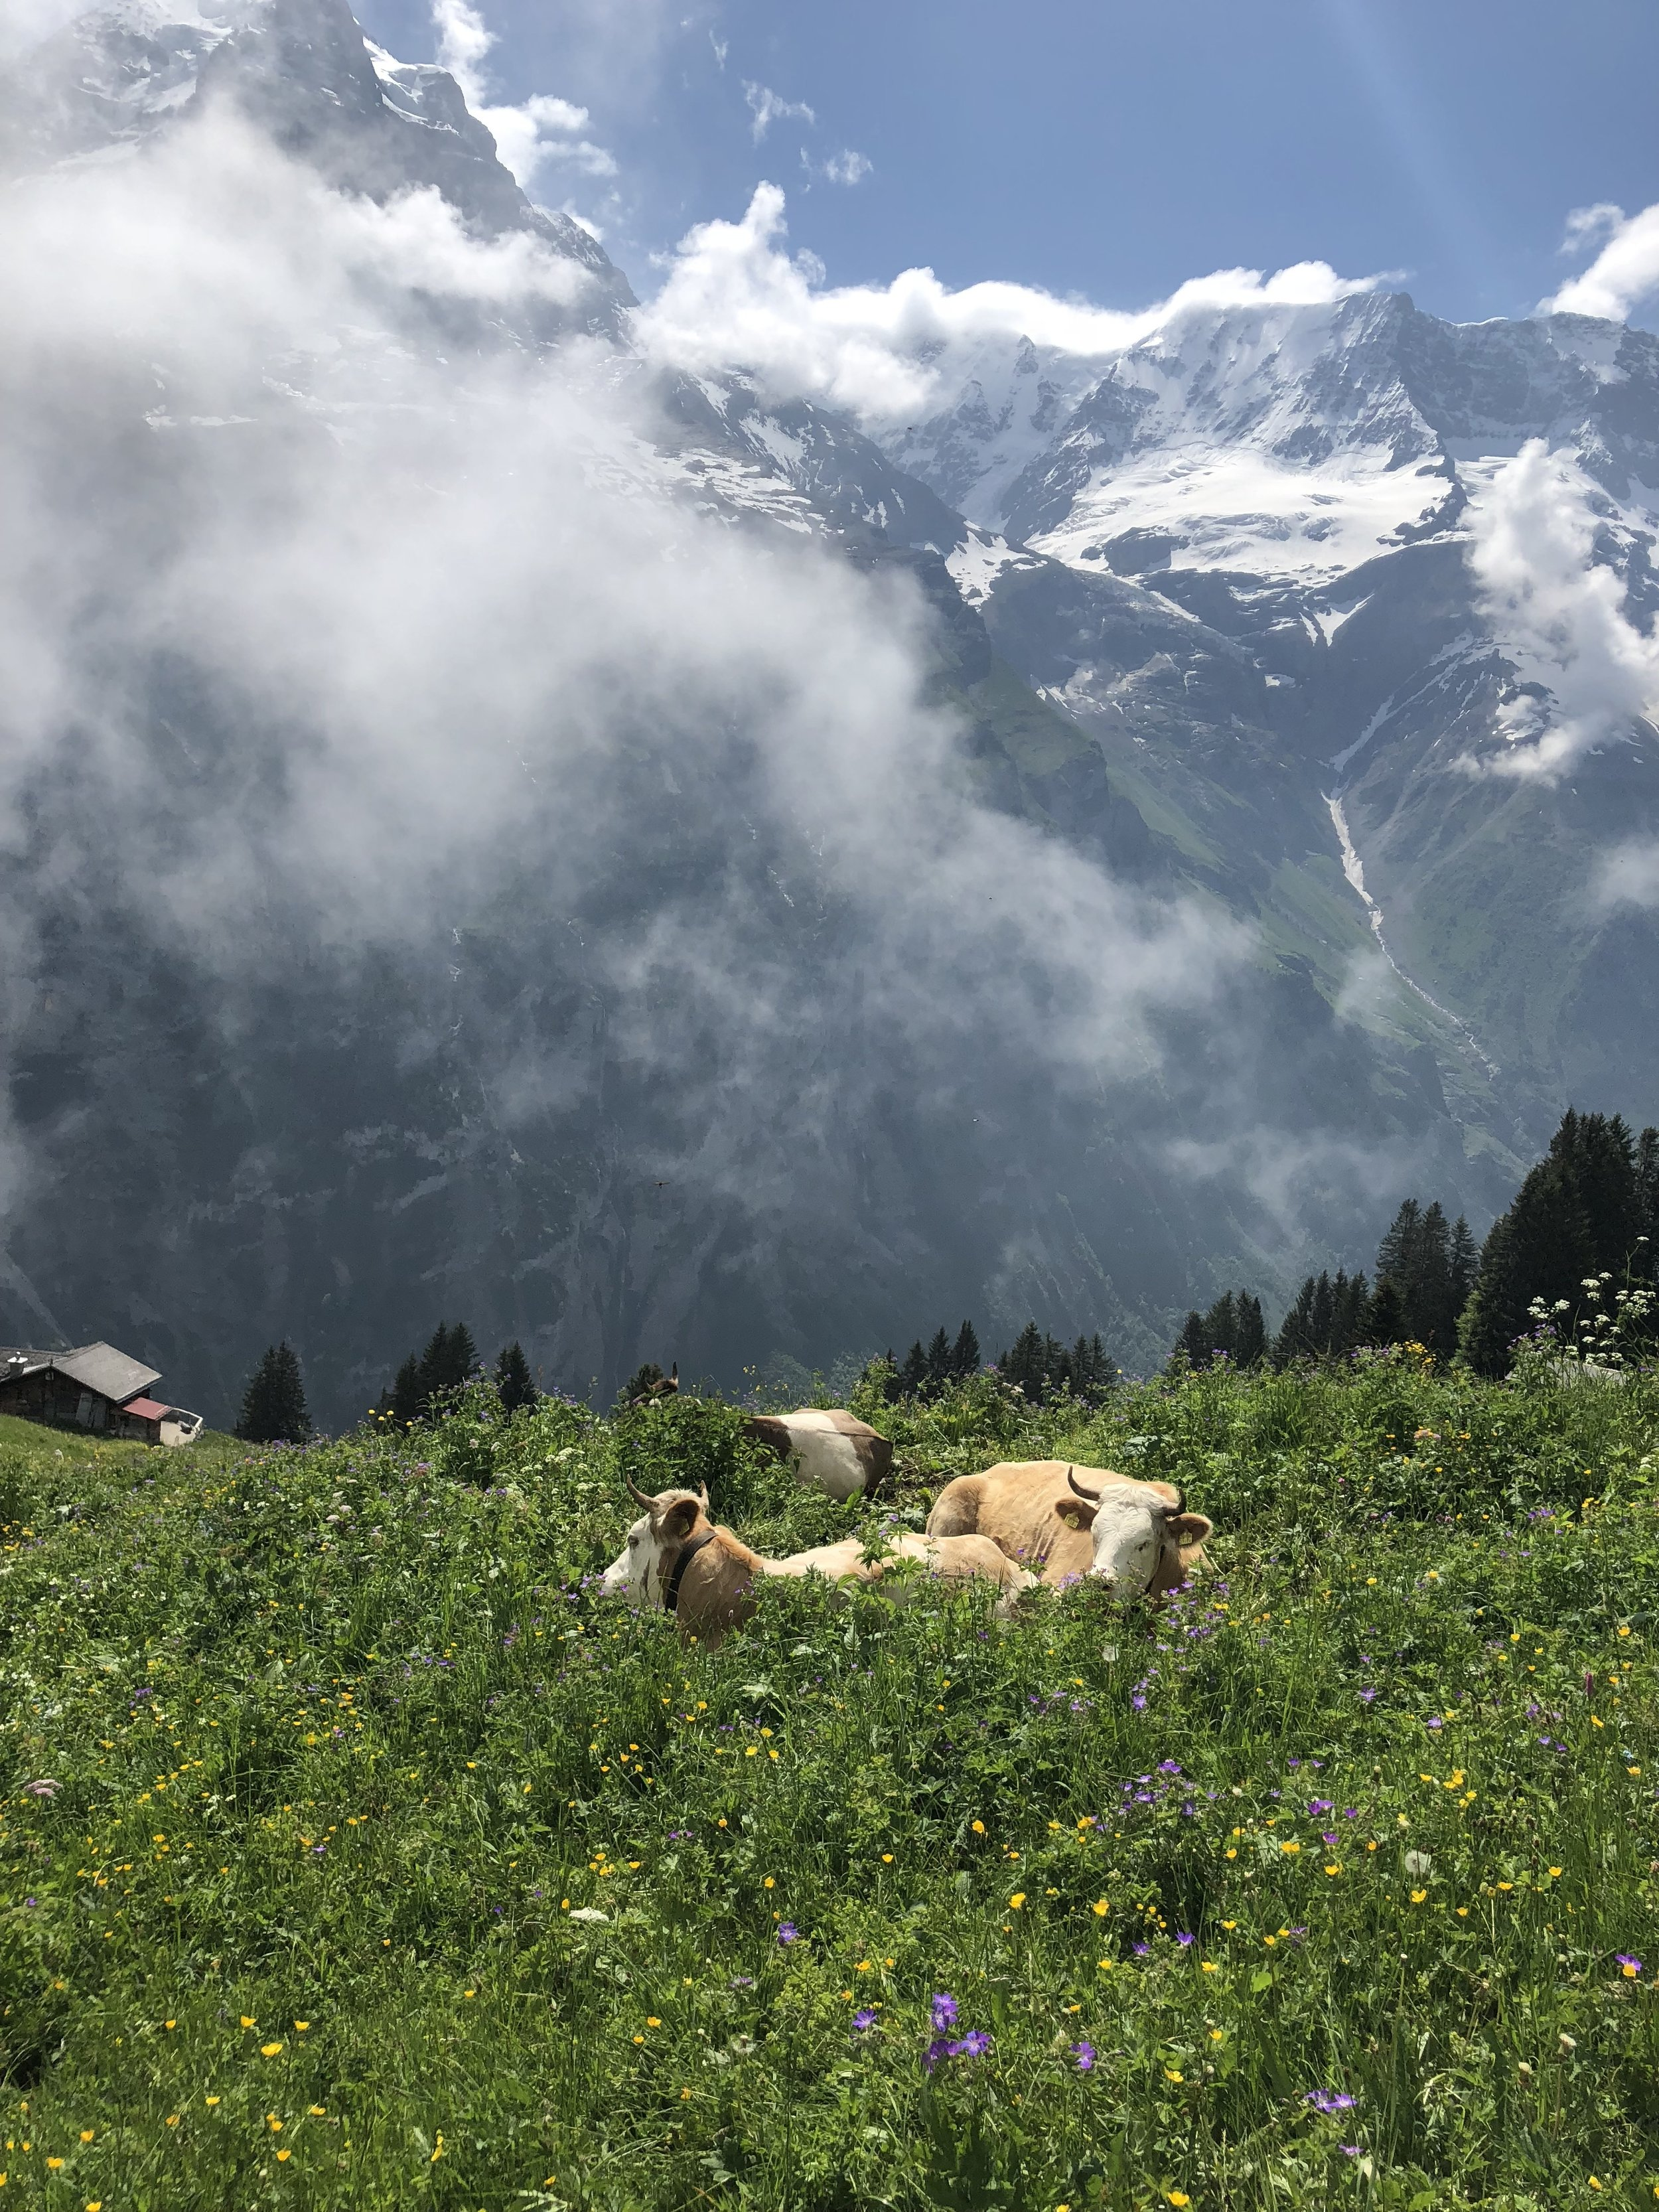 During our walk, we'd come across a number of cows resting and grazing. They were not bothered by us at all. Honestly, though, can you believe this view?? I was obsessed with the beautiful wildflowers.